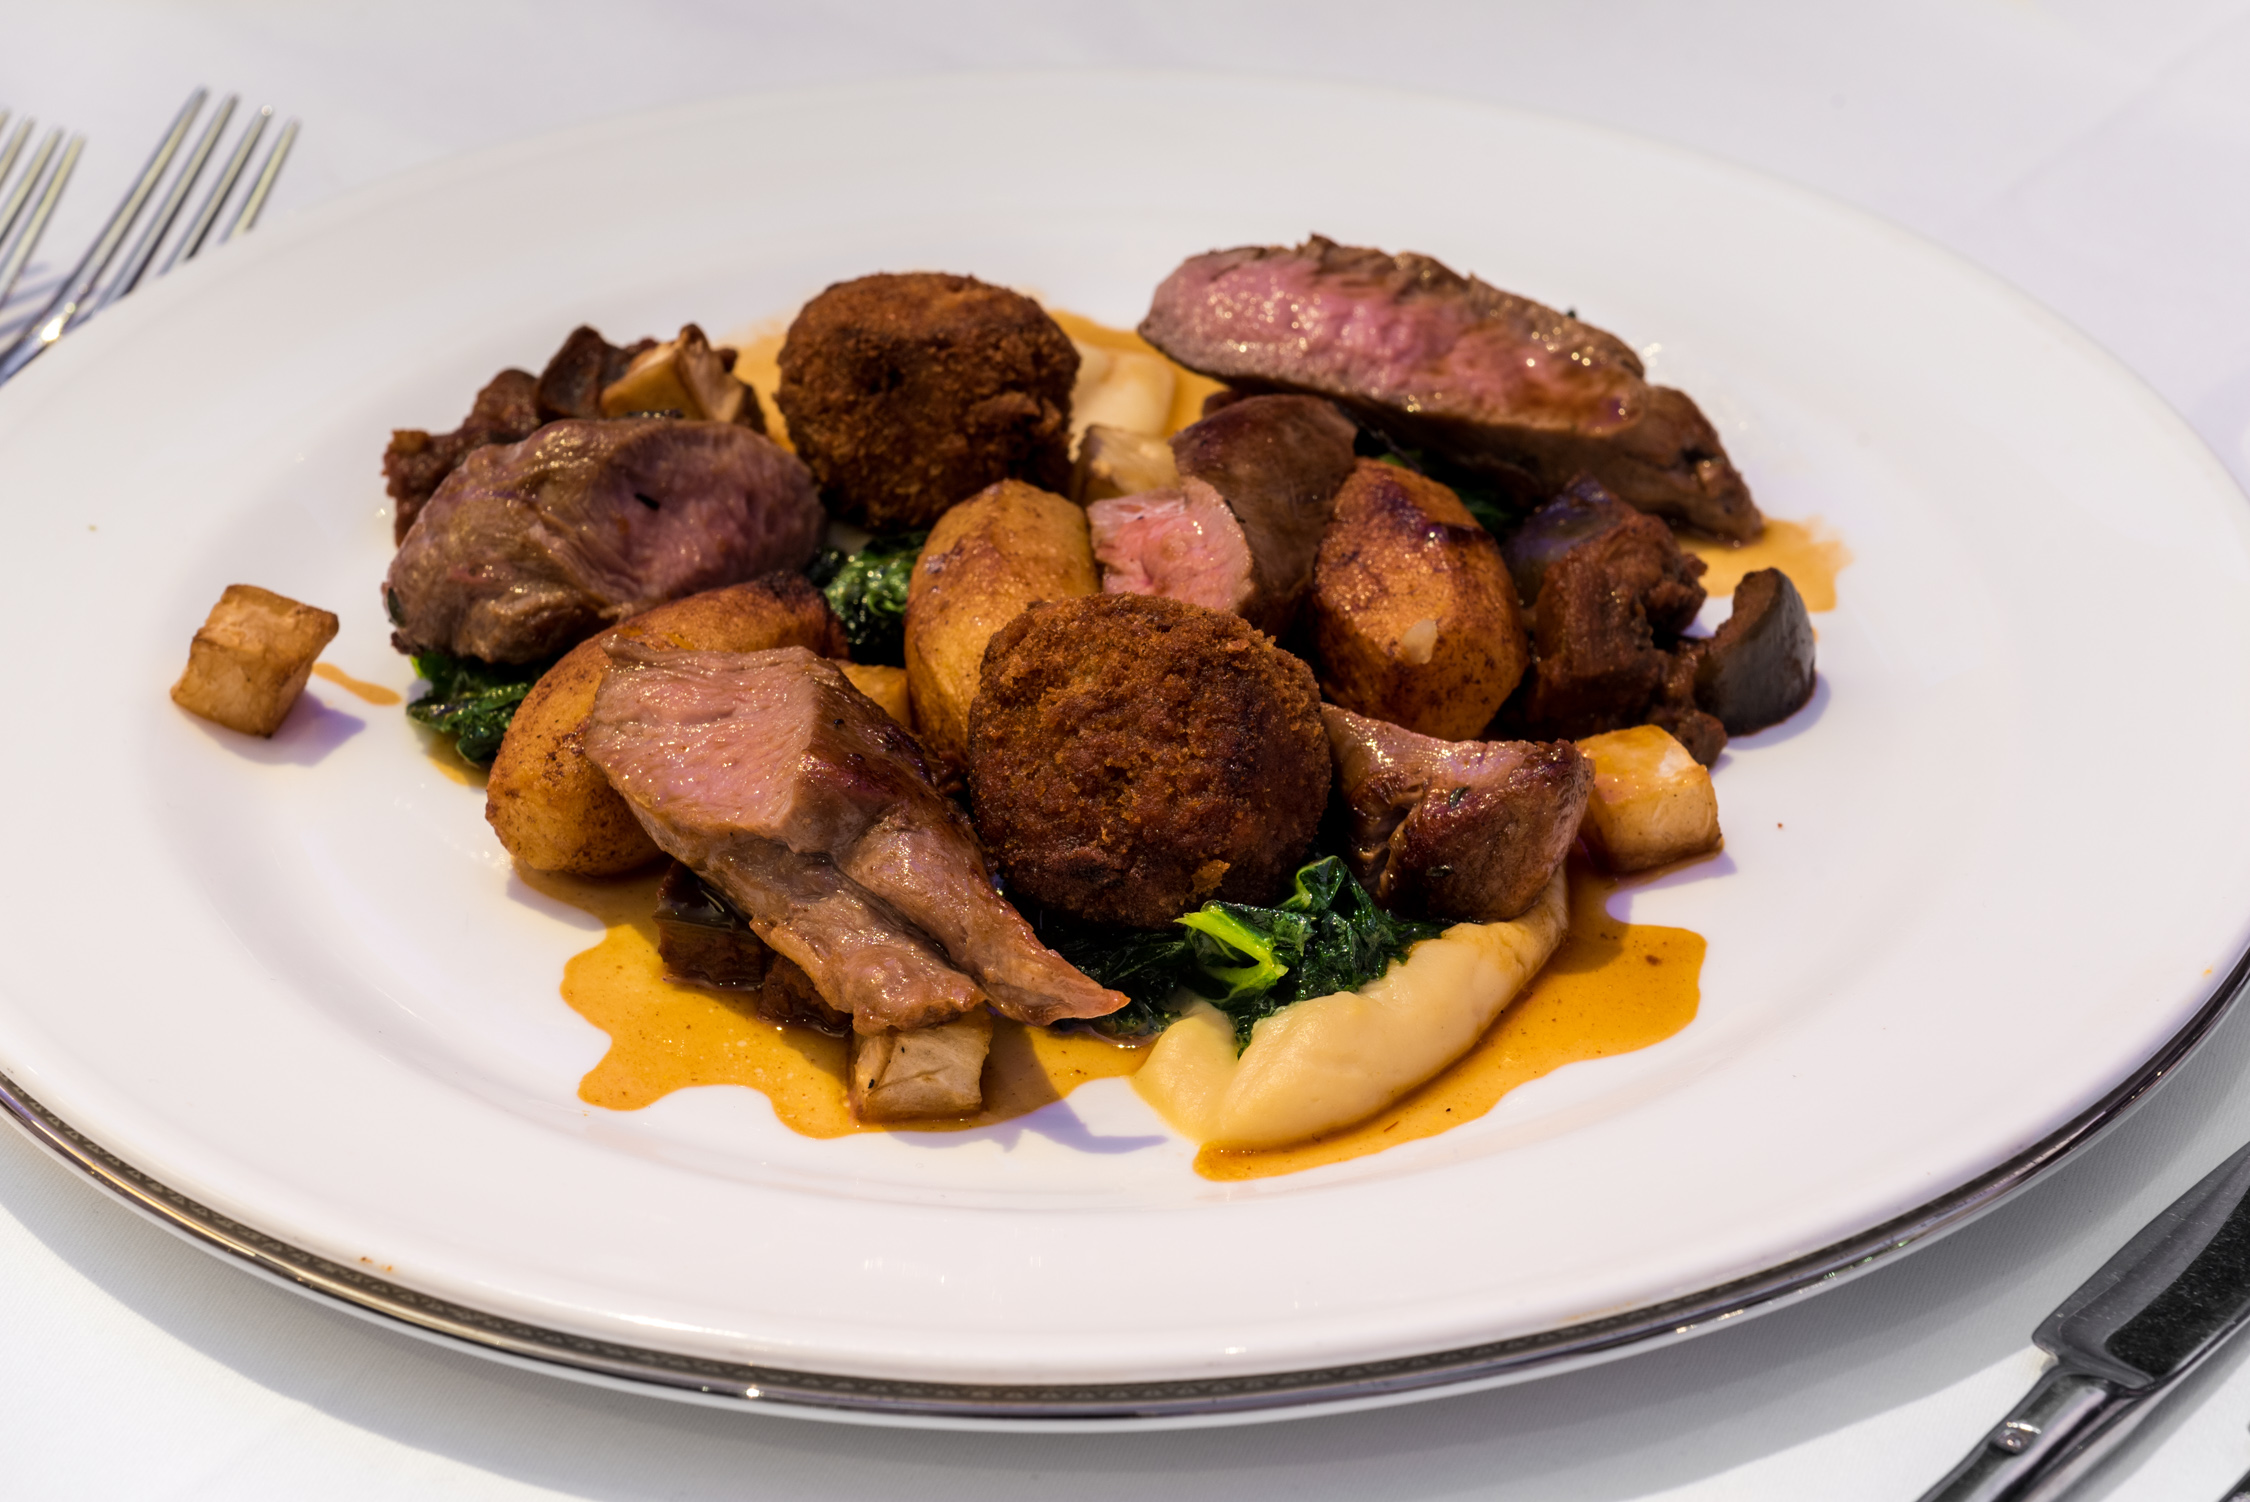 the duo of lamb with roasted celeriac and a rosemary jus